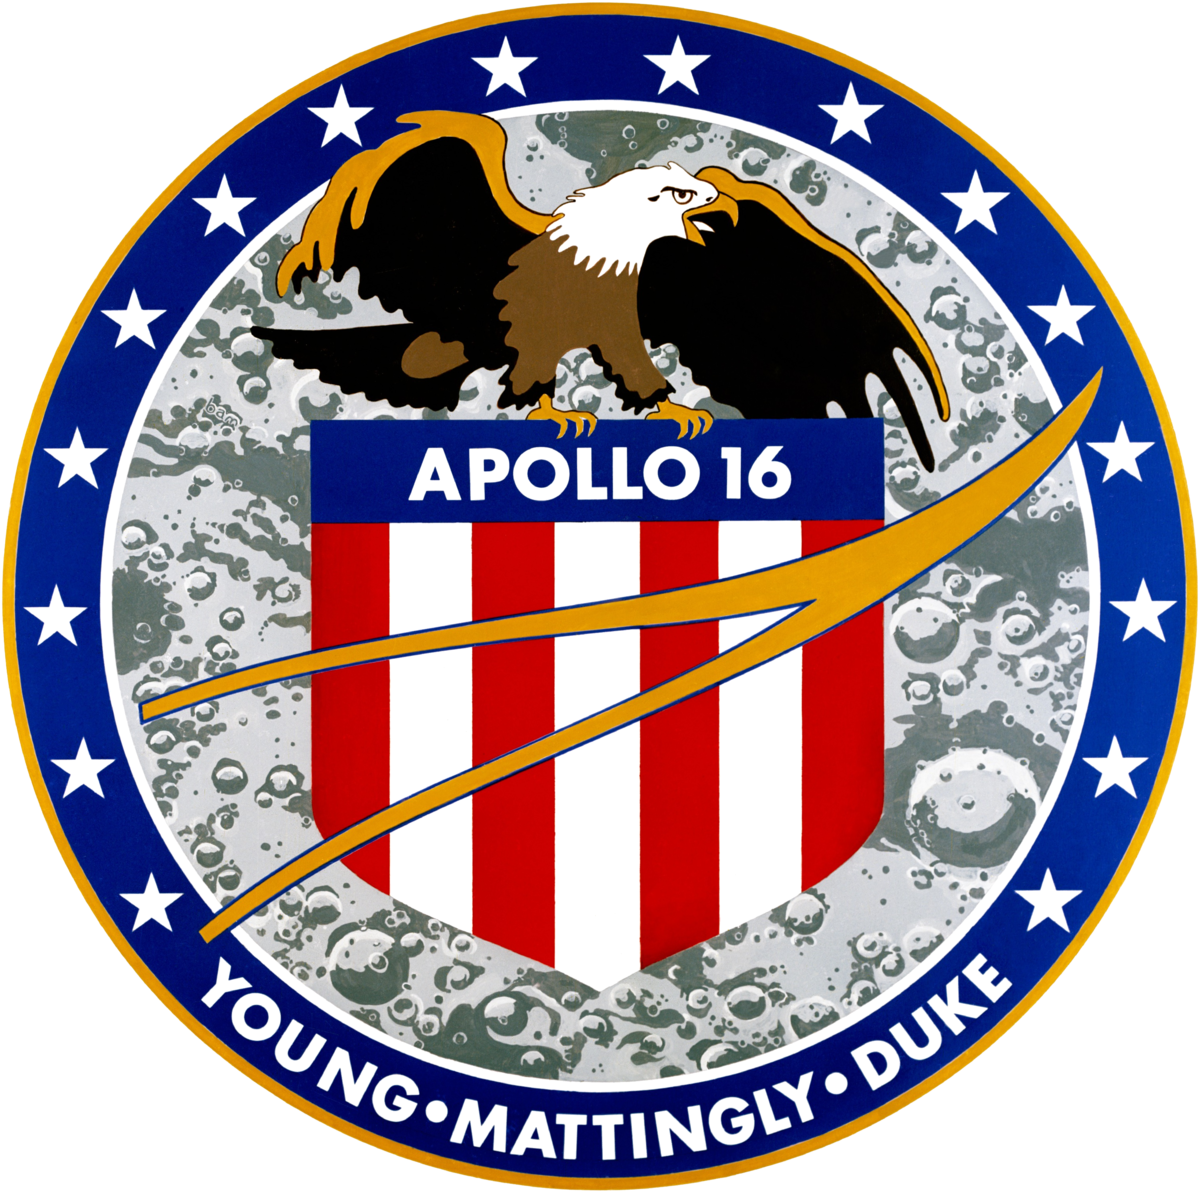 nasa apollo logo vector - photo #3